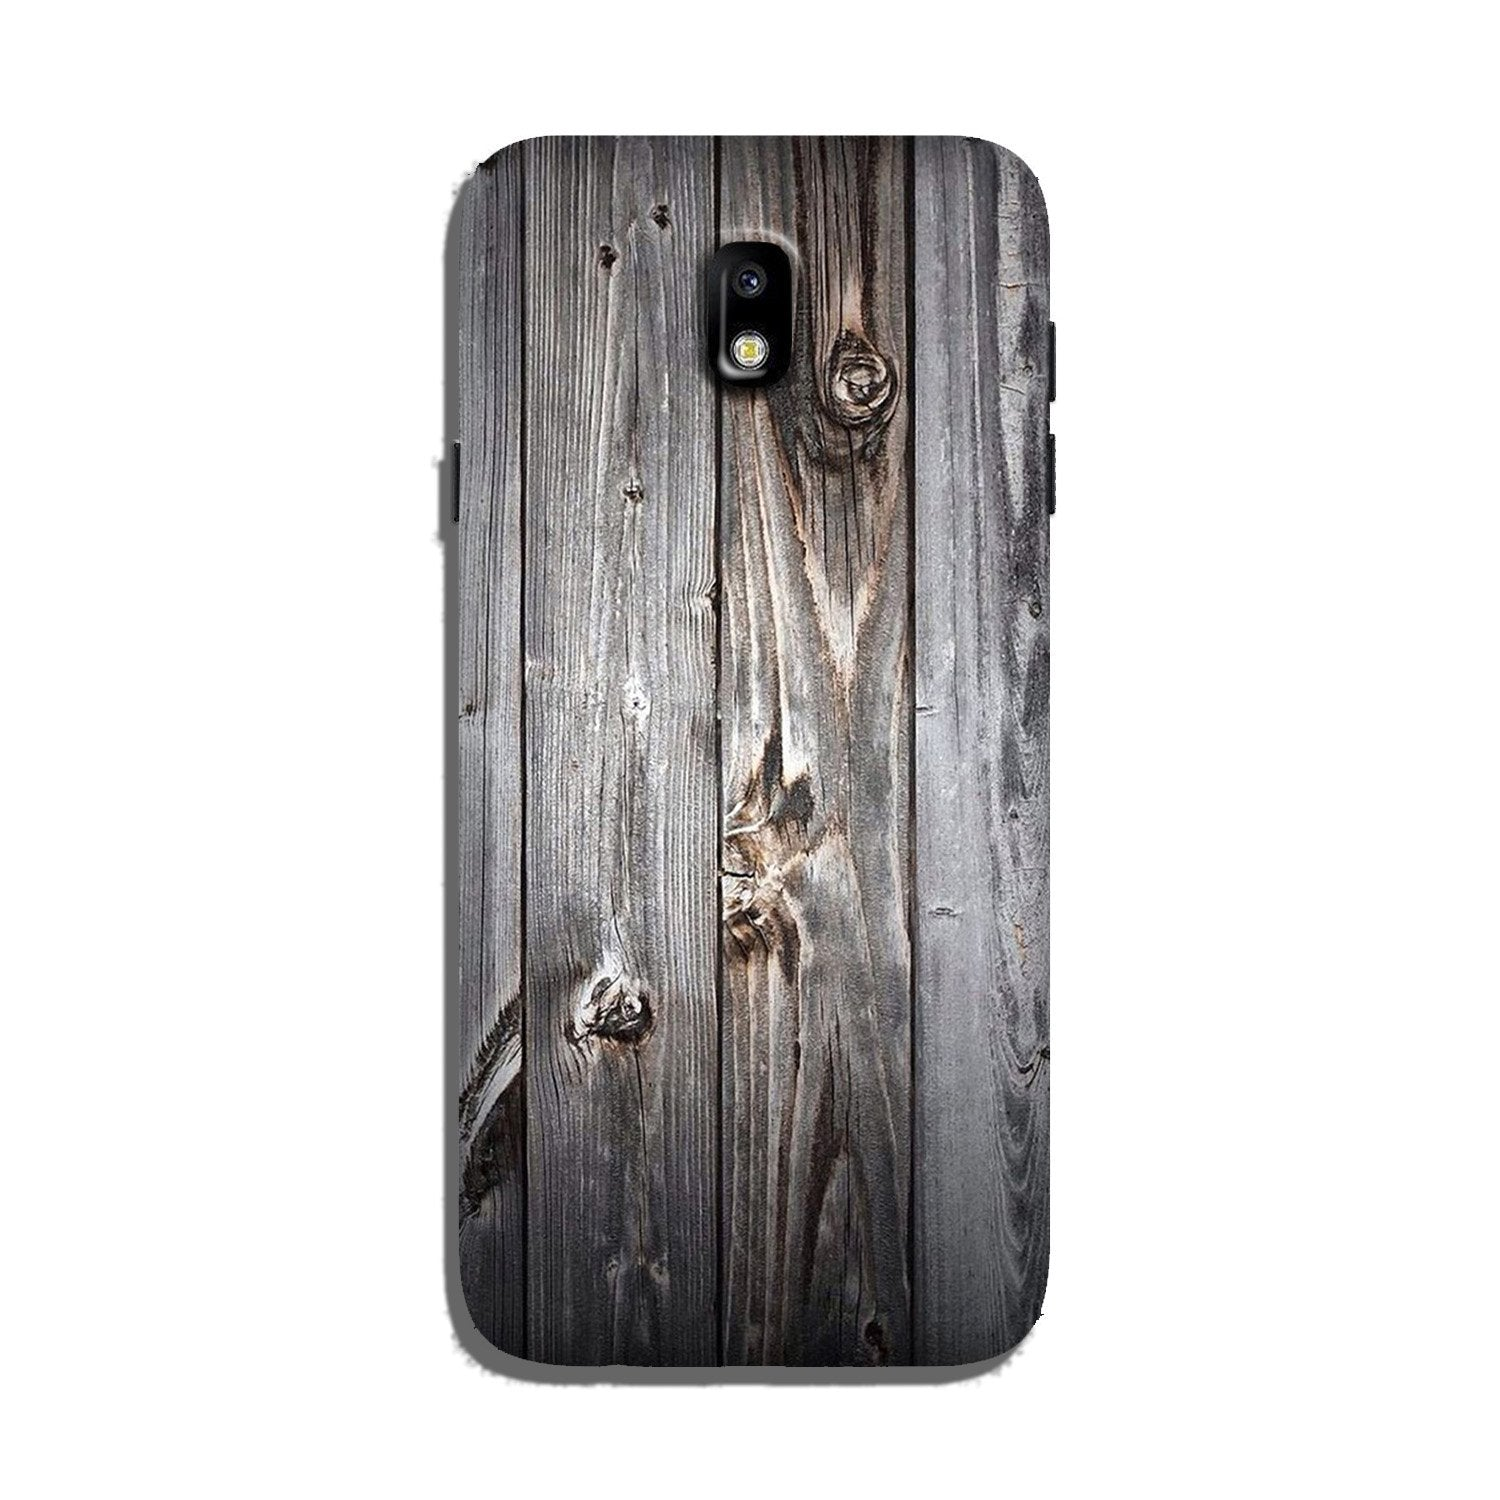 Wooden Look Case for Galaxy J5 Pro  (Design - 114)